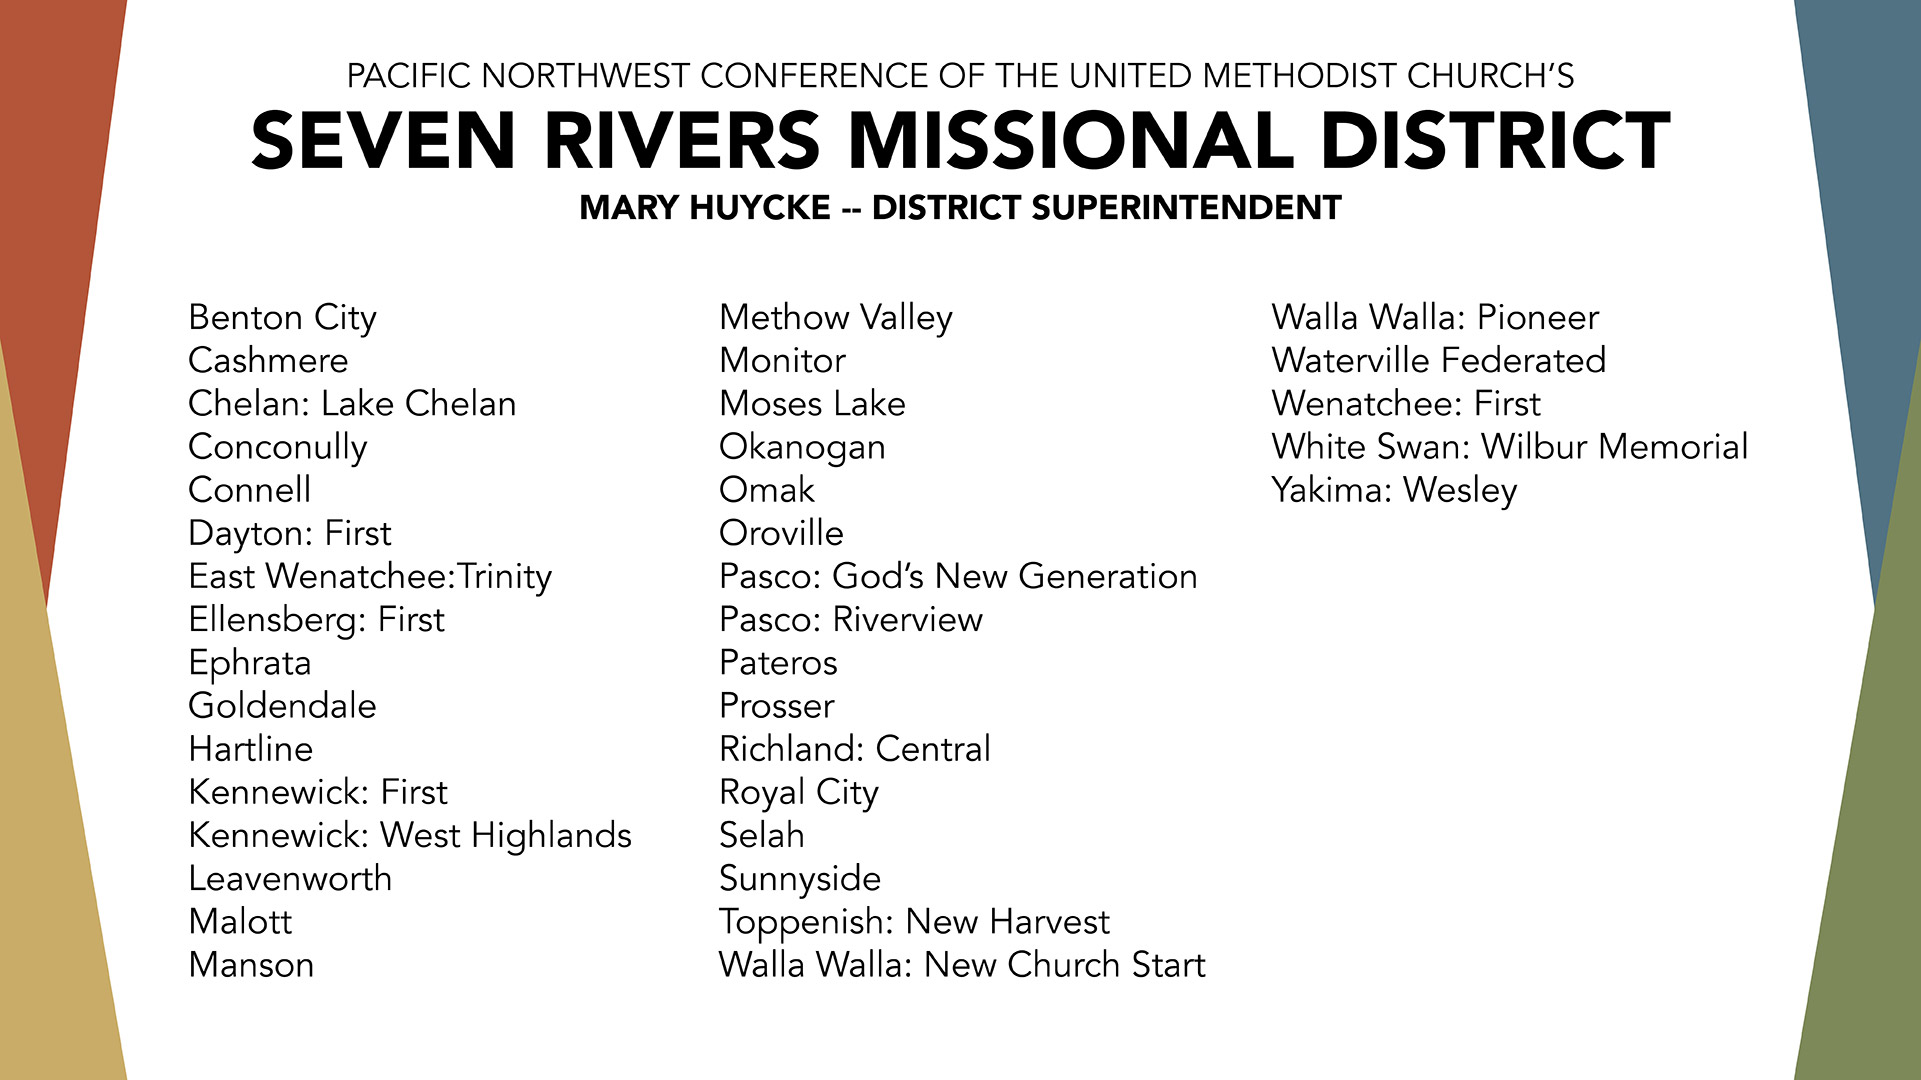 Seven Rivers Missional District » The Pacific Northwest Conference